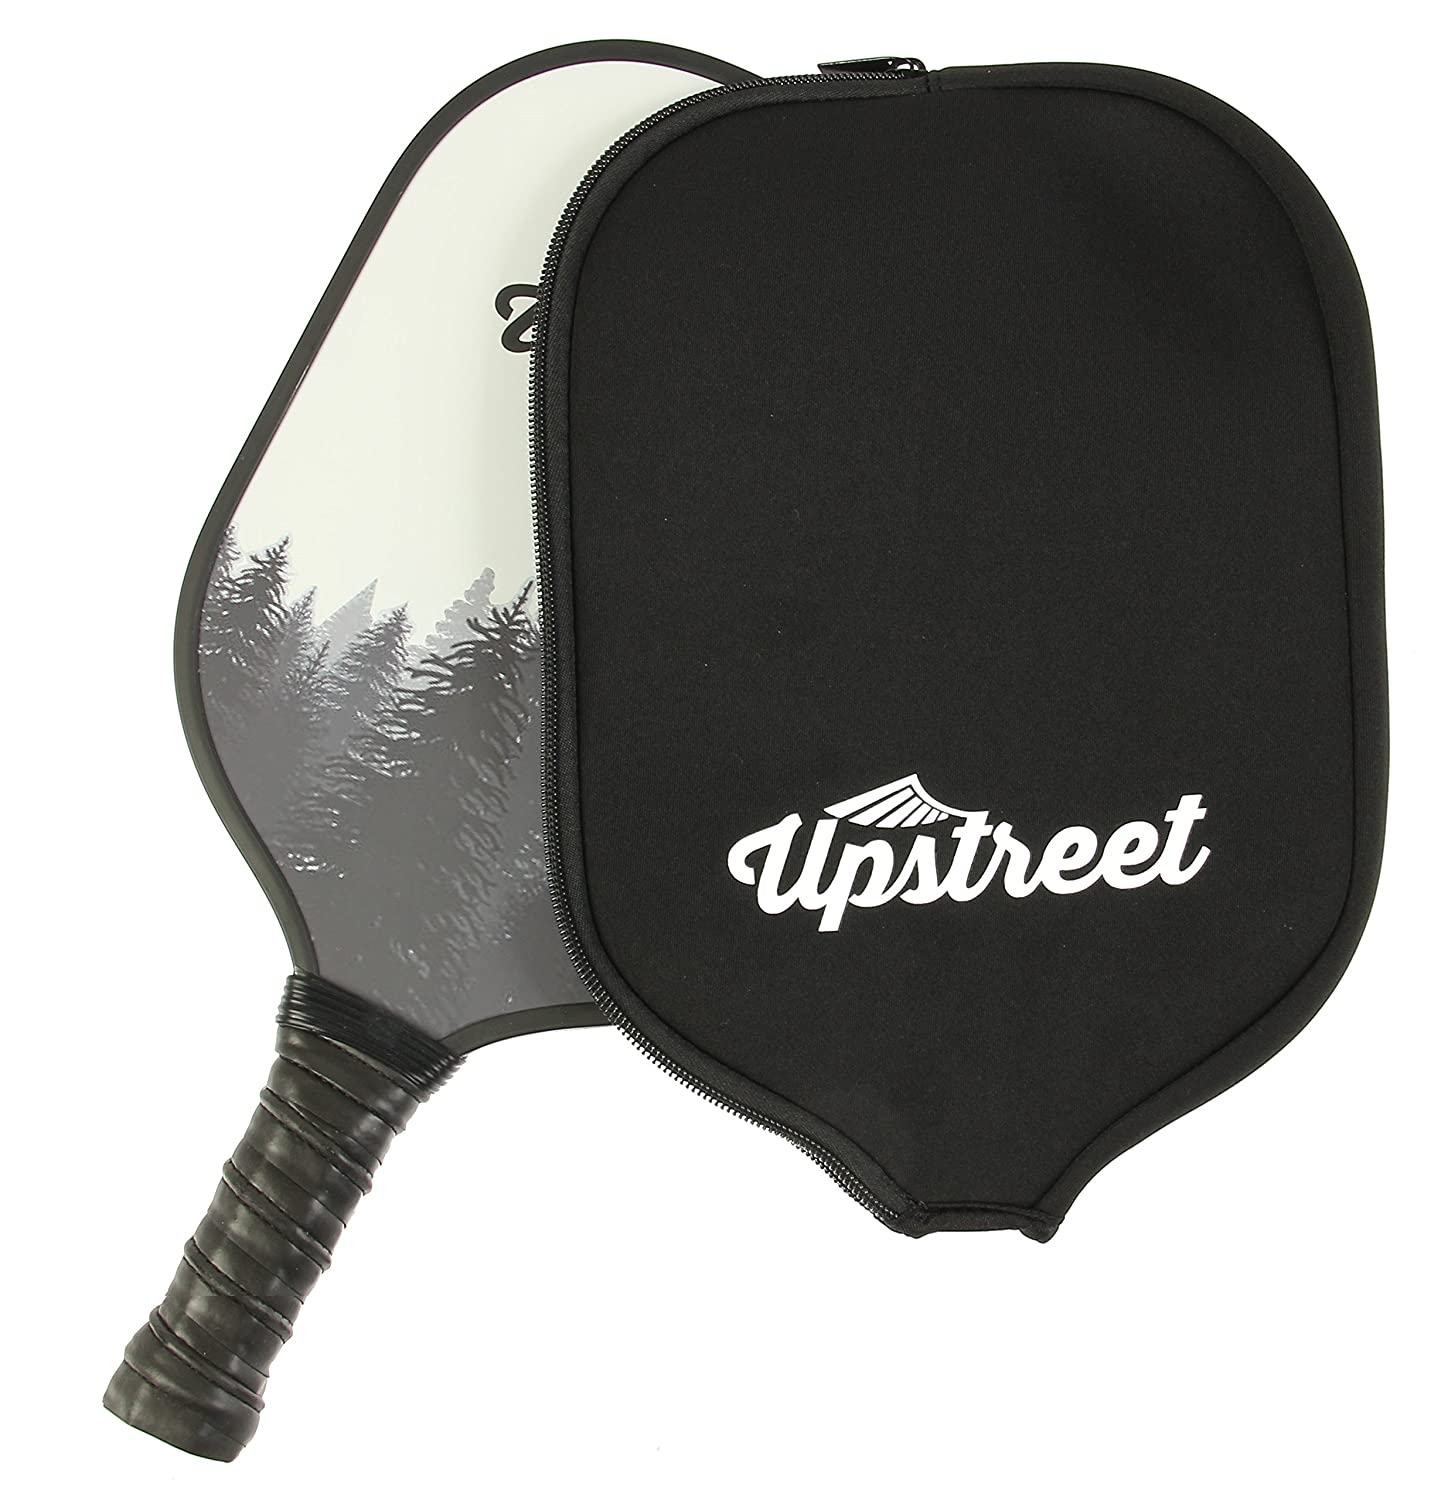 Graphite Pickleball Paddle by Upstreet (Forrest) | PP Honeycomb Composite Core | Neoprene Racket